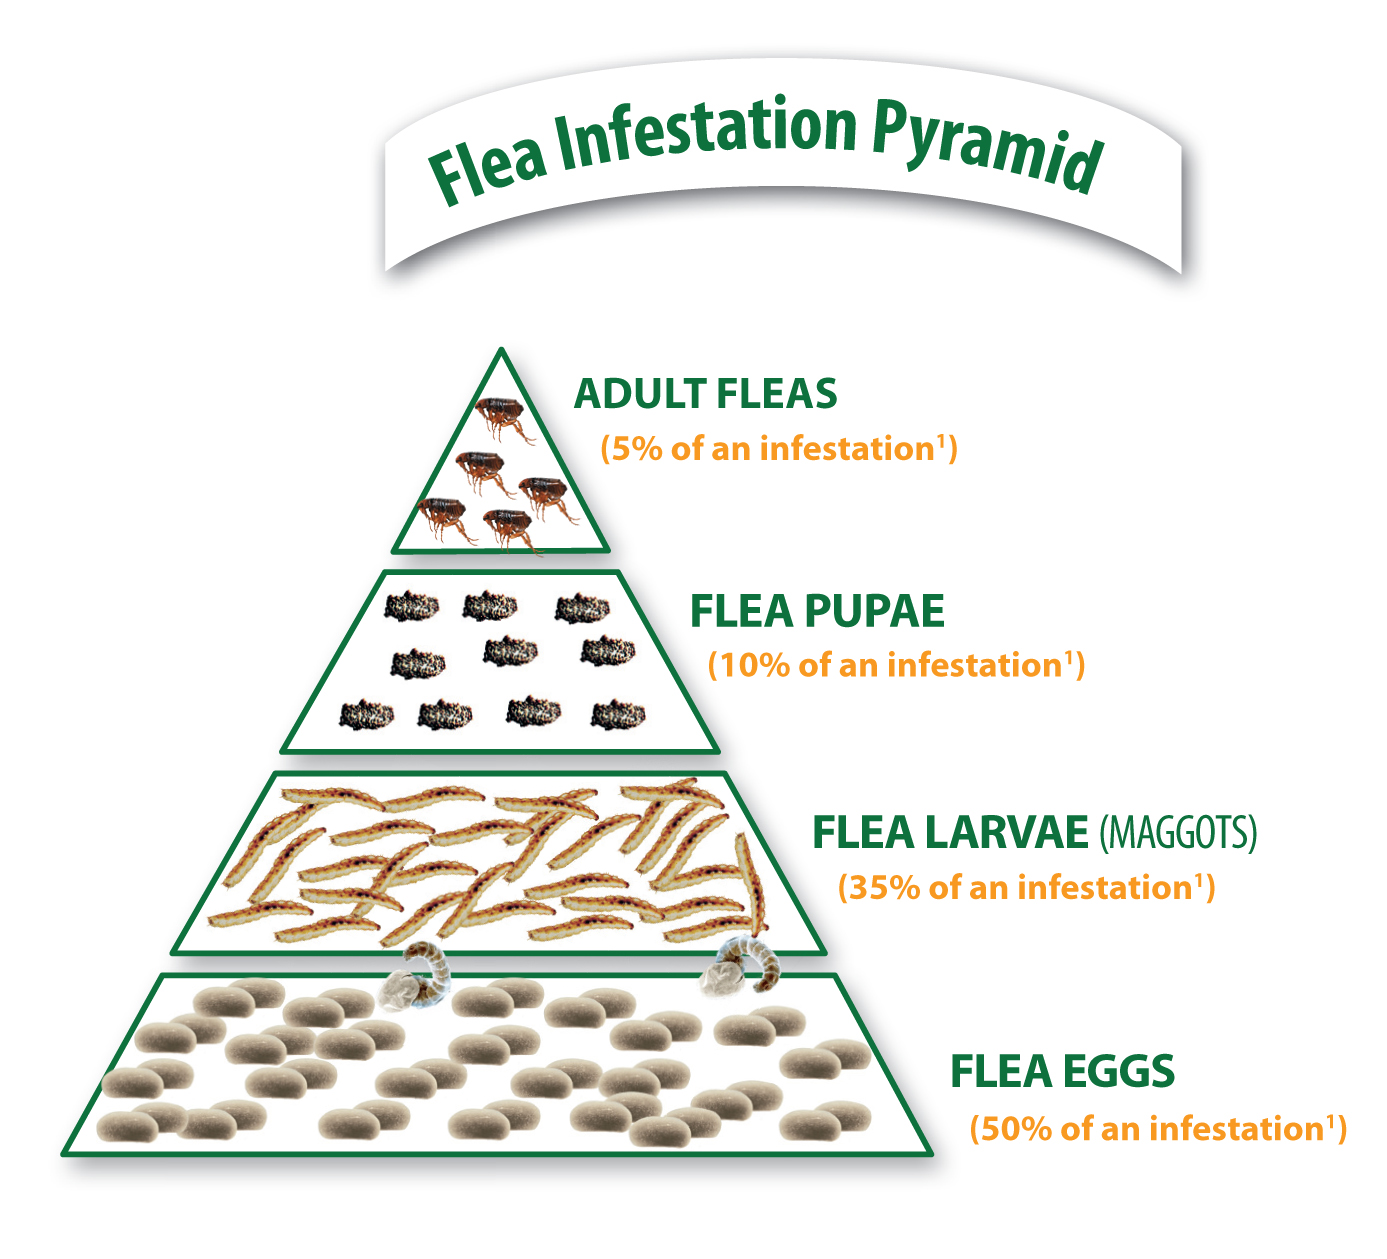 Flea%20pyramid%20adult%20fleas%205%25%20infestation